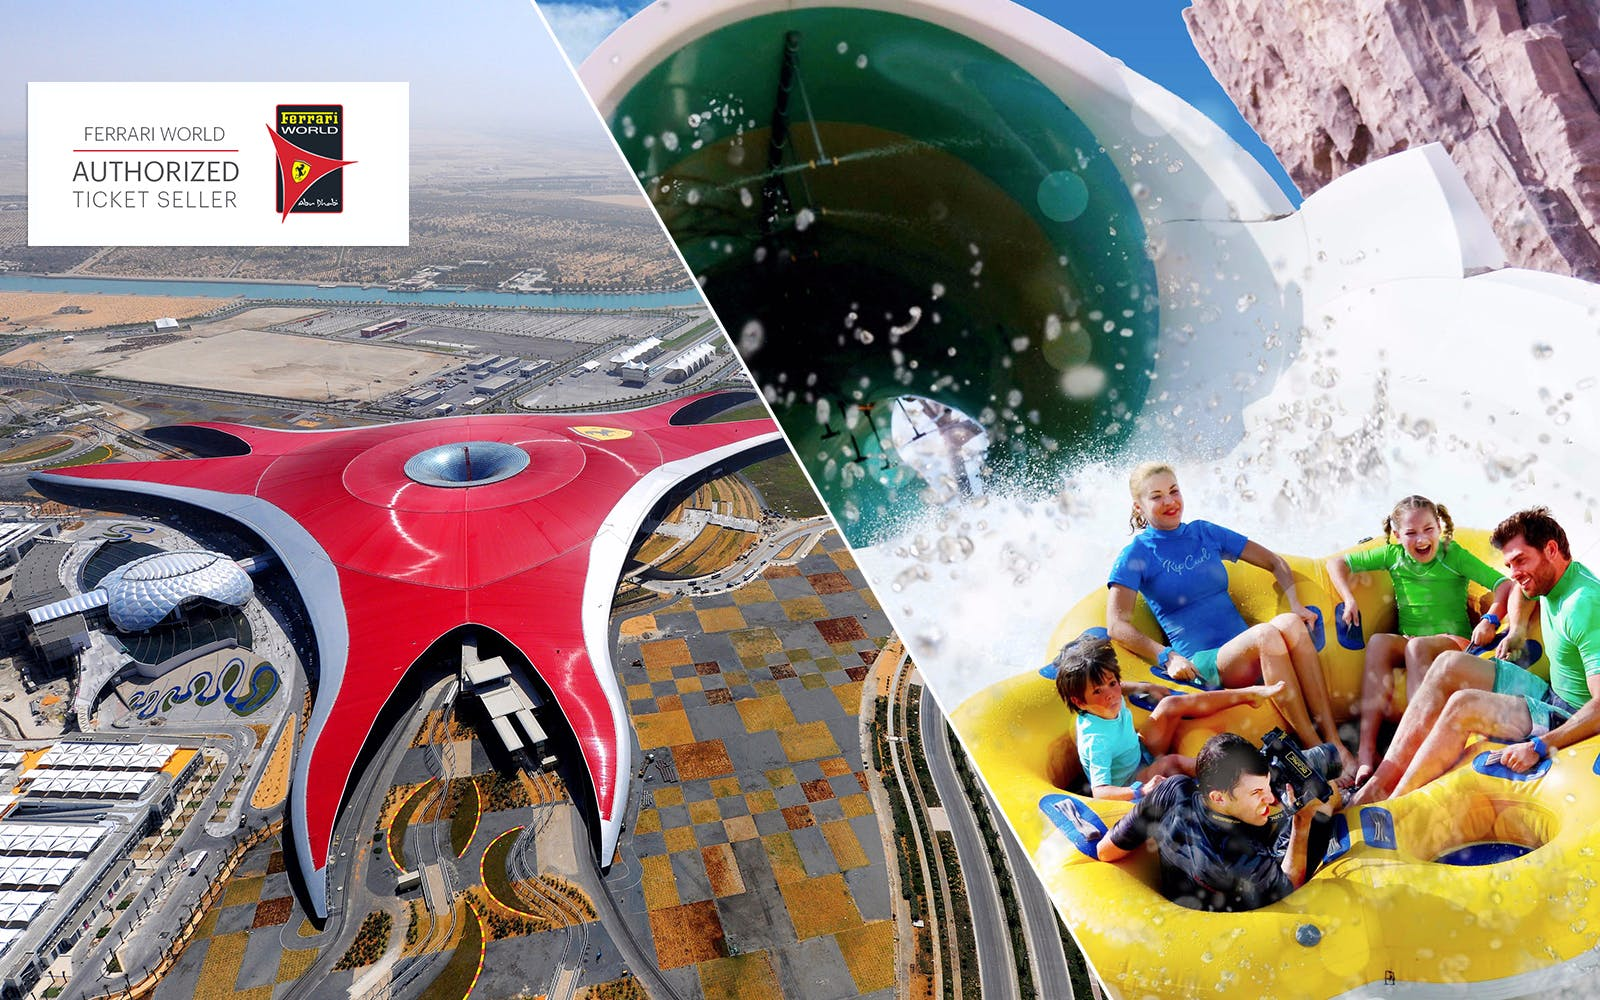 Ferrari World and Yas Waterworld Gold Pass